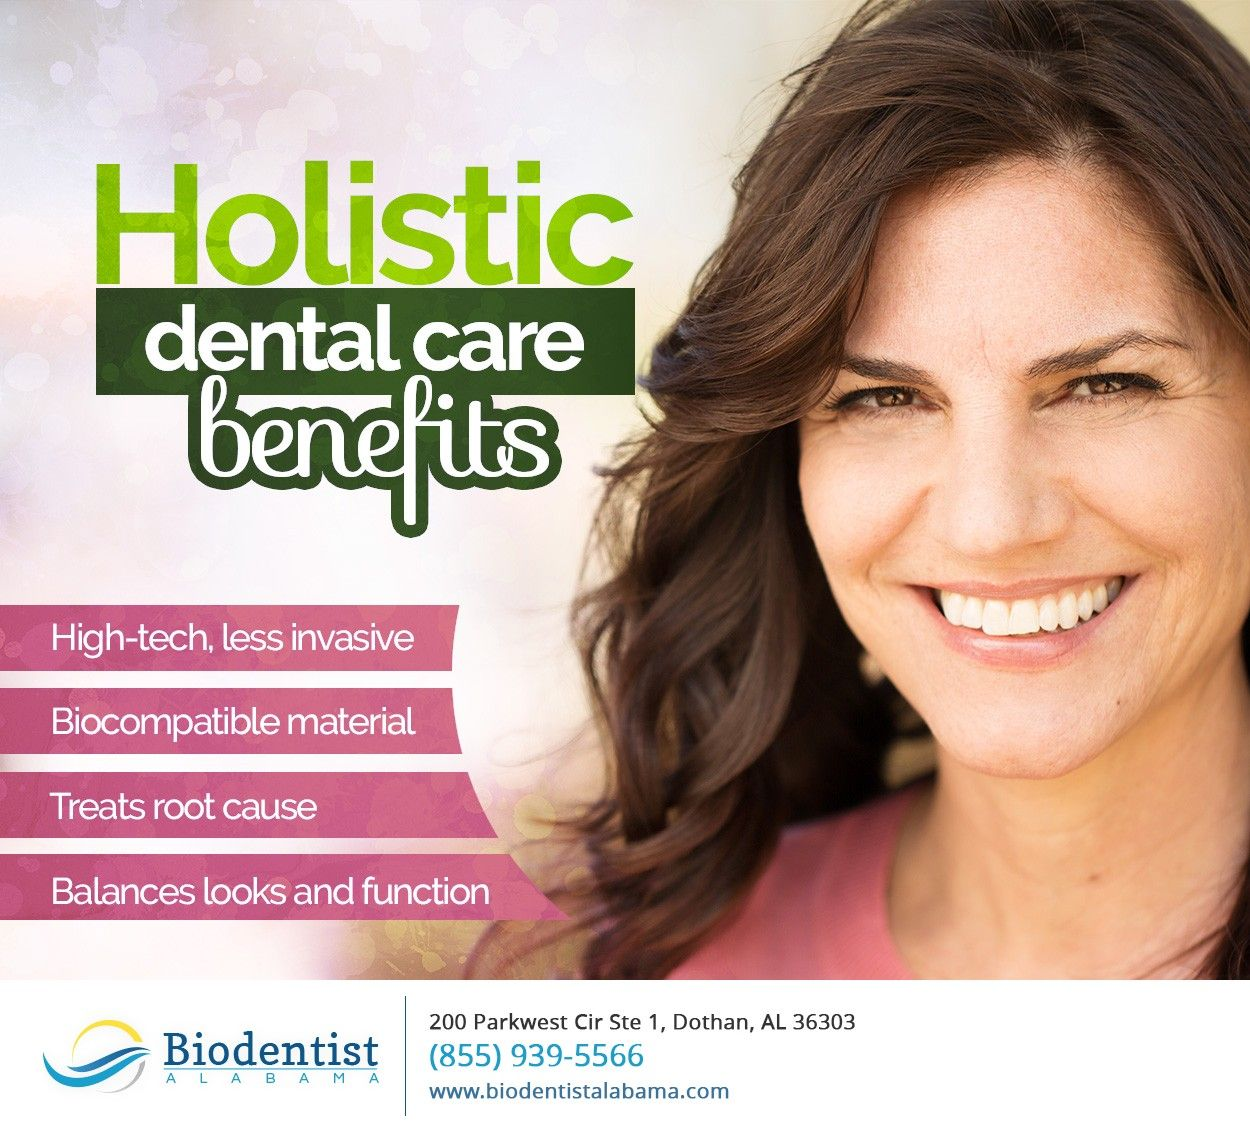 We take a holistic approach to dental care, focusing on